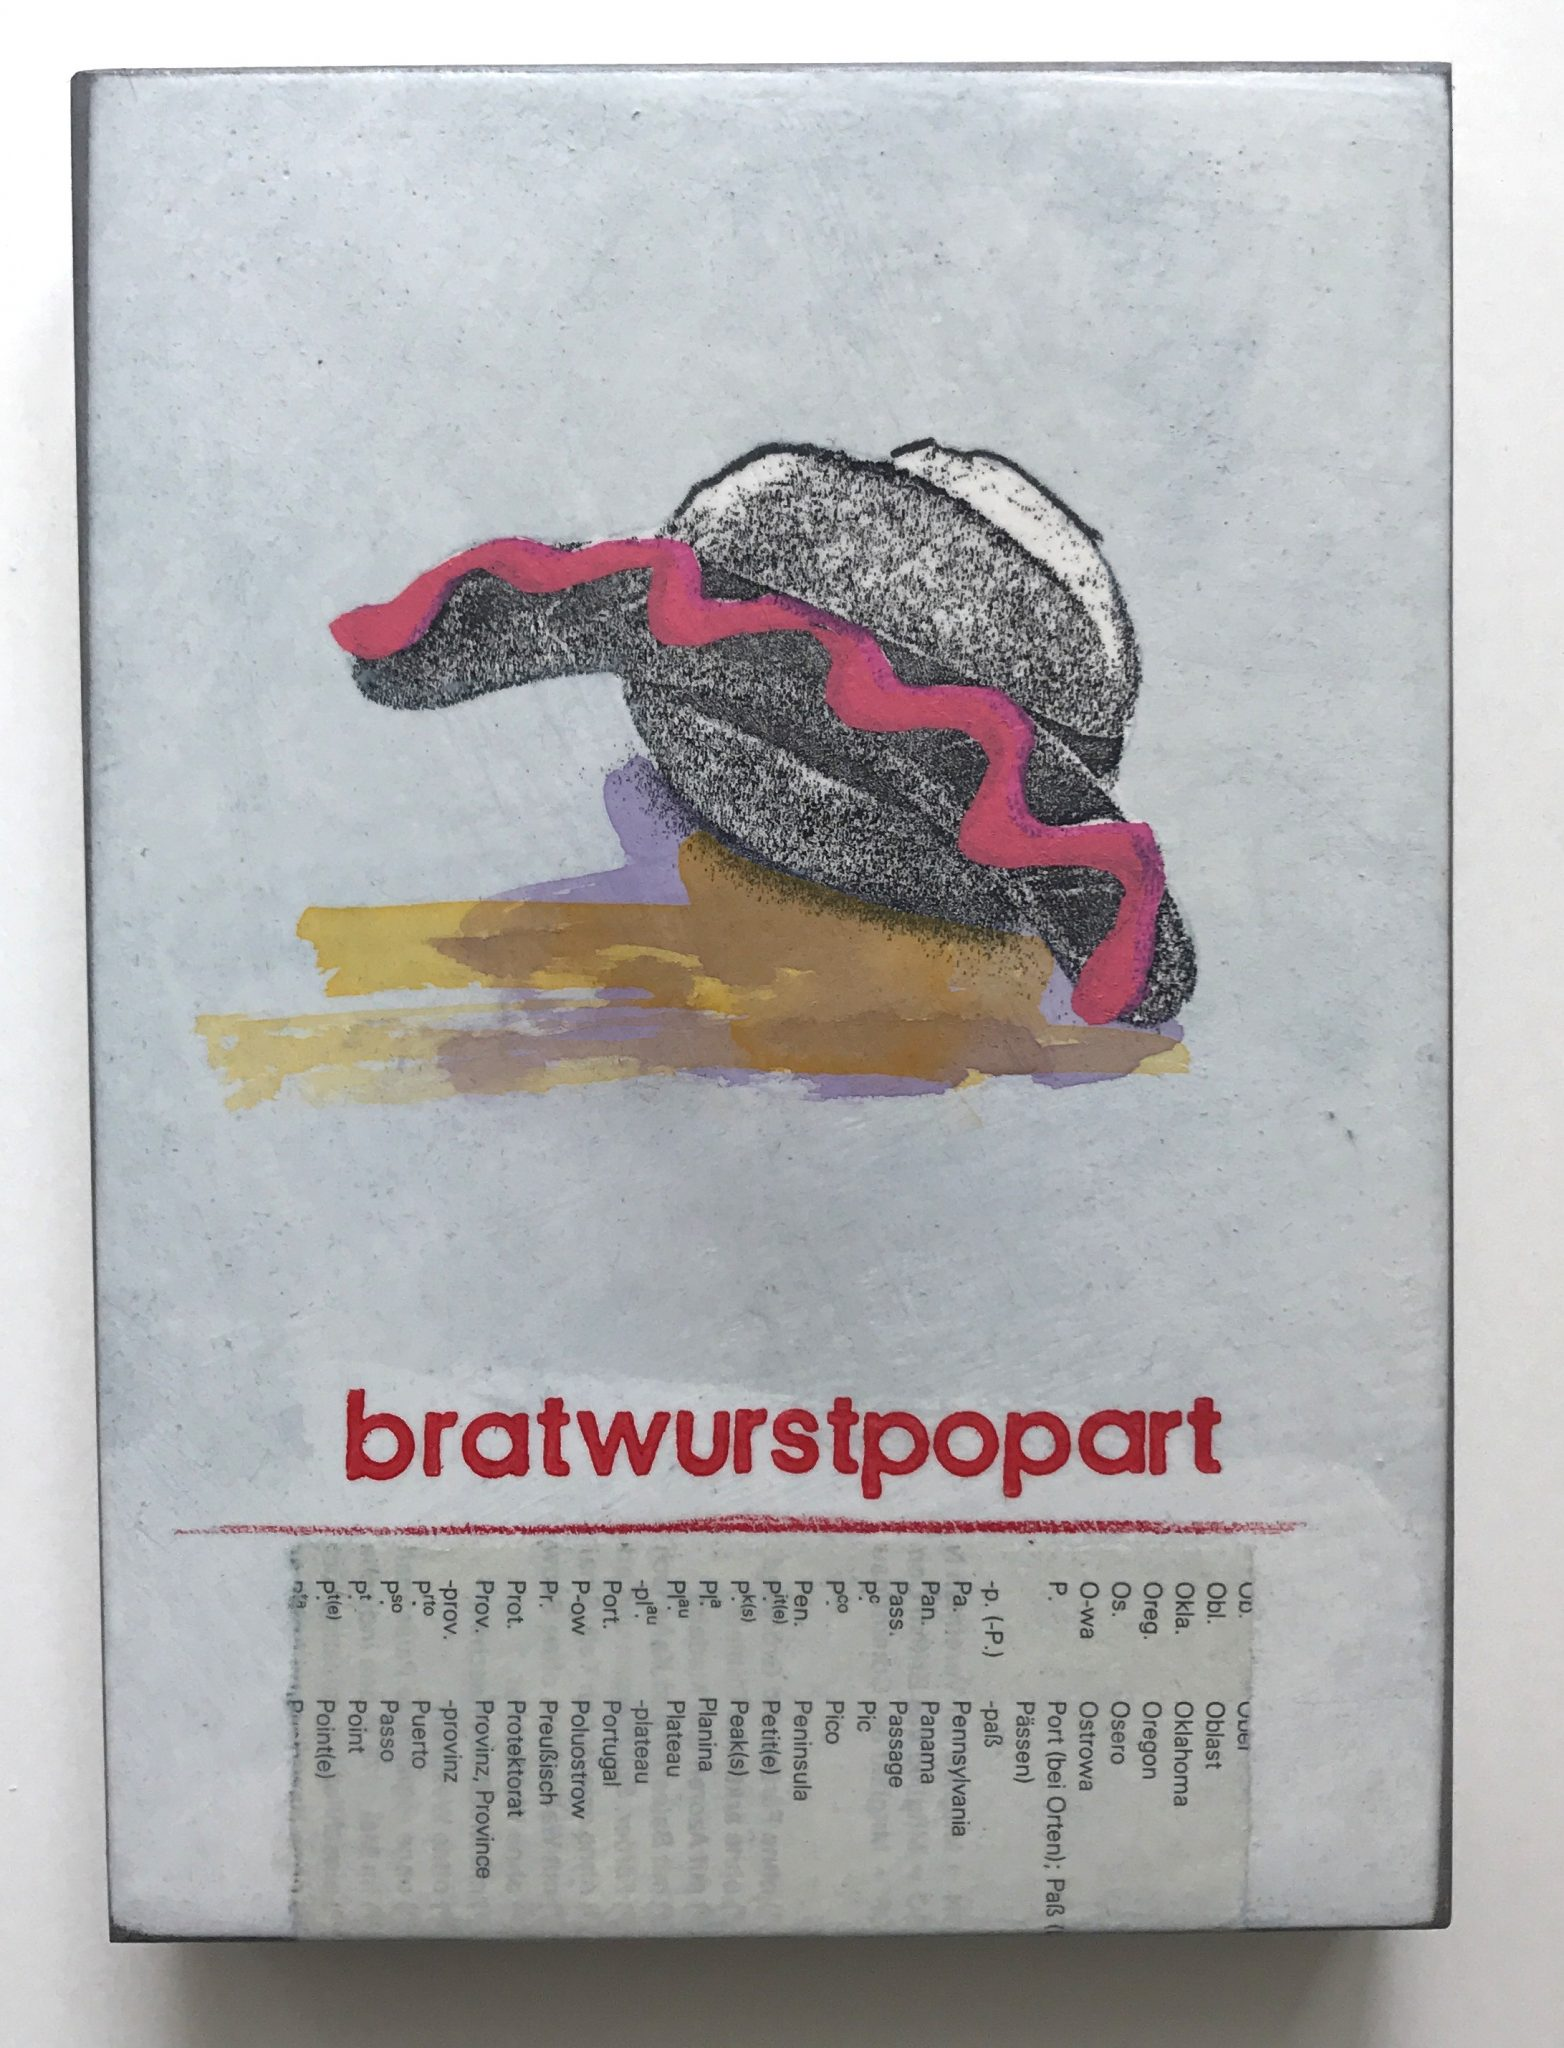 Jan M. Petersen-bratwurstpopart, 2017